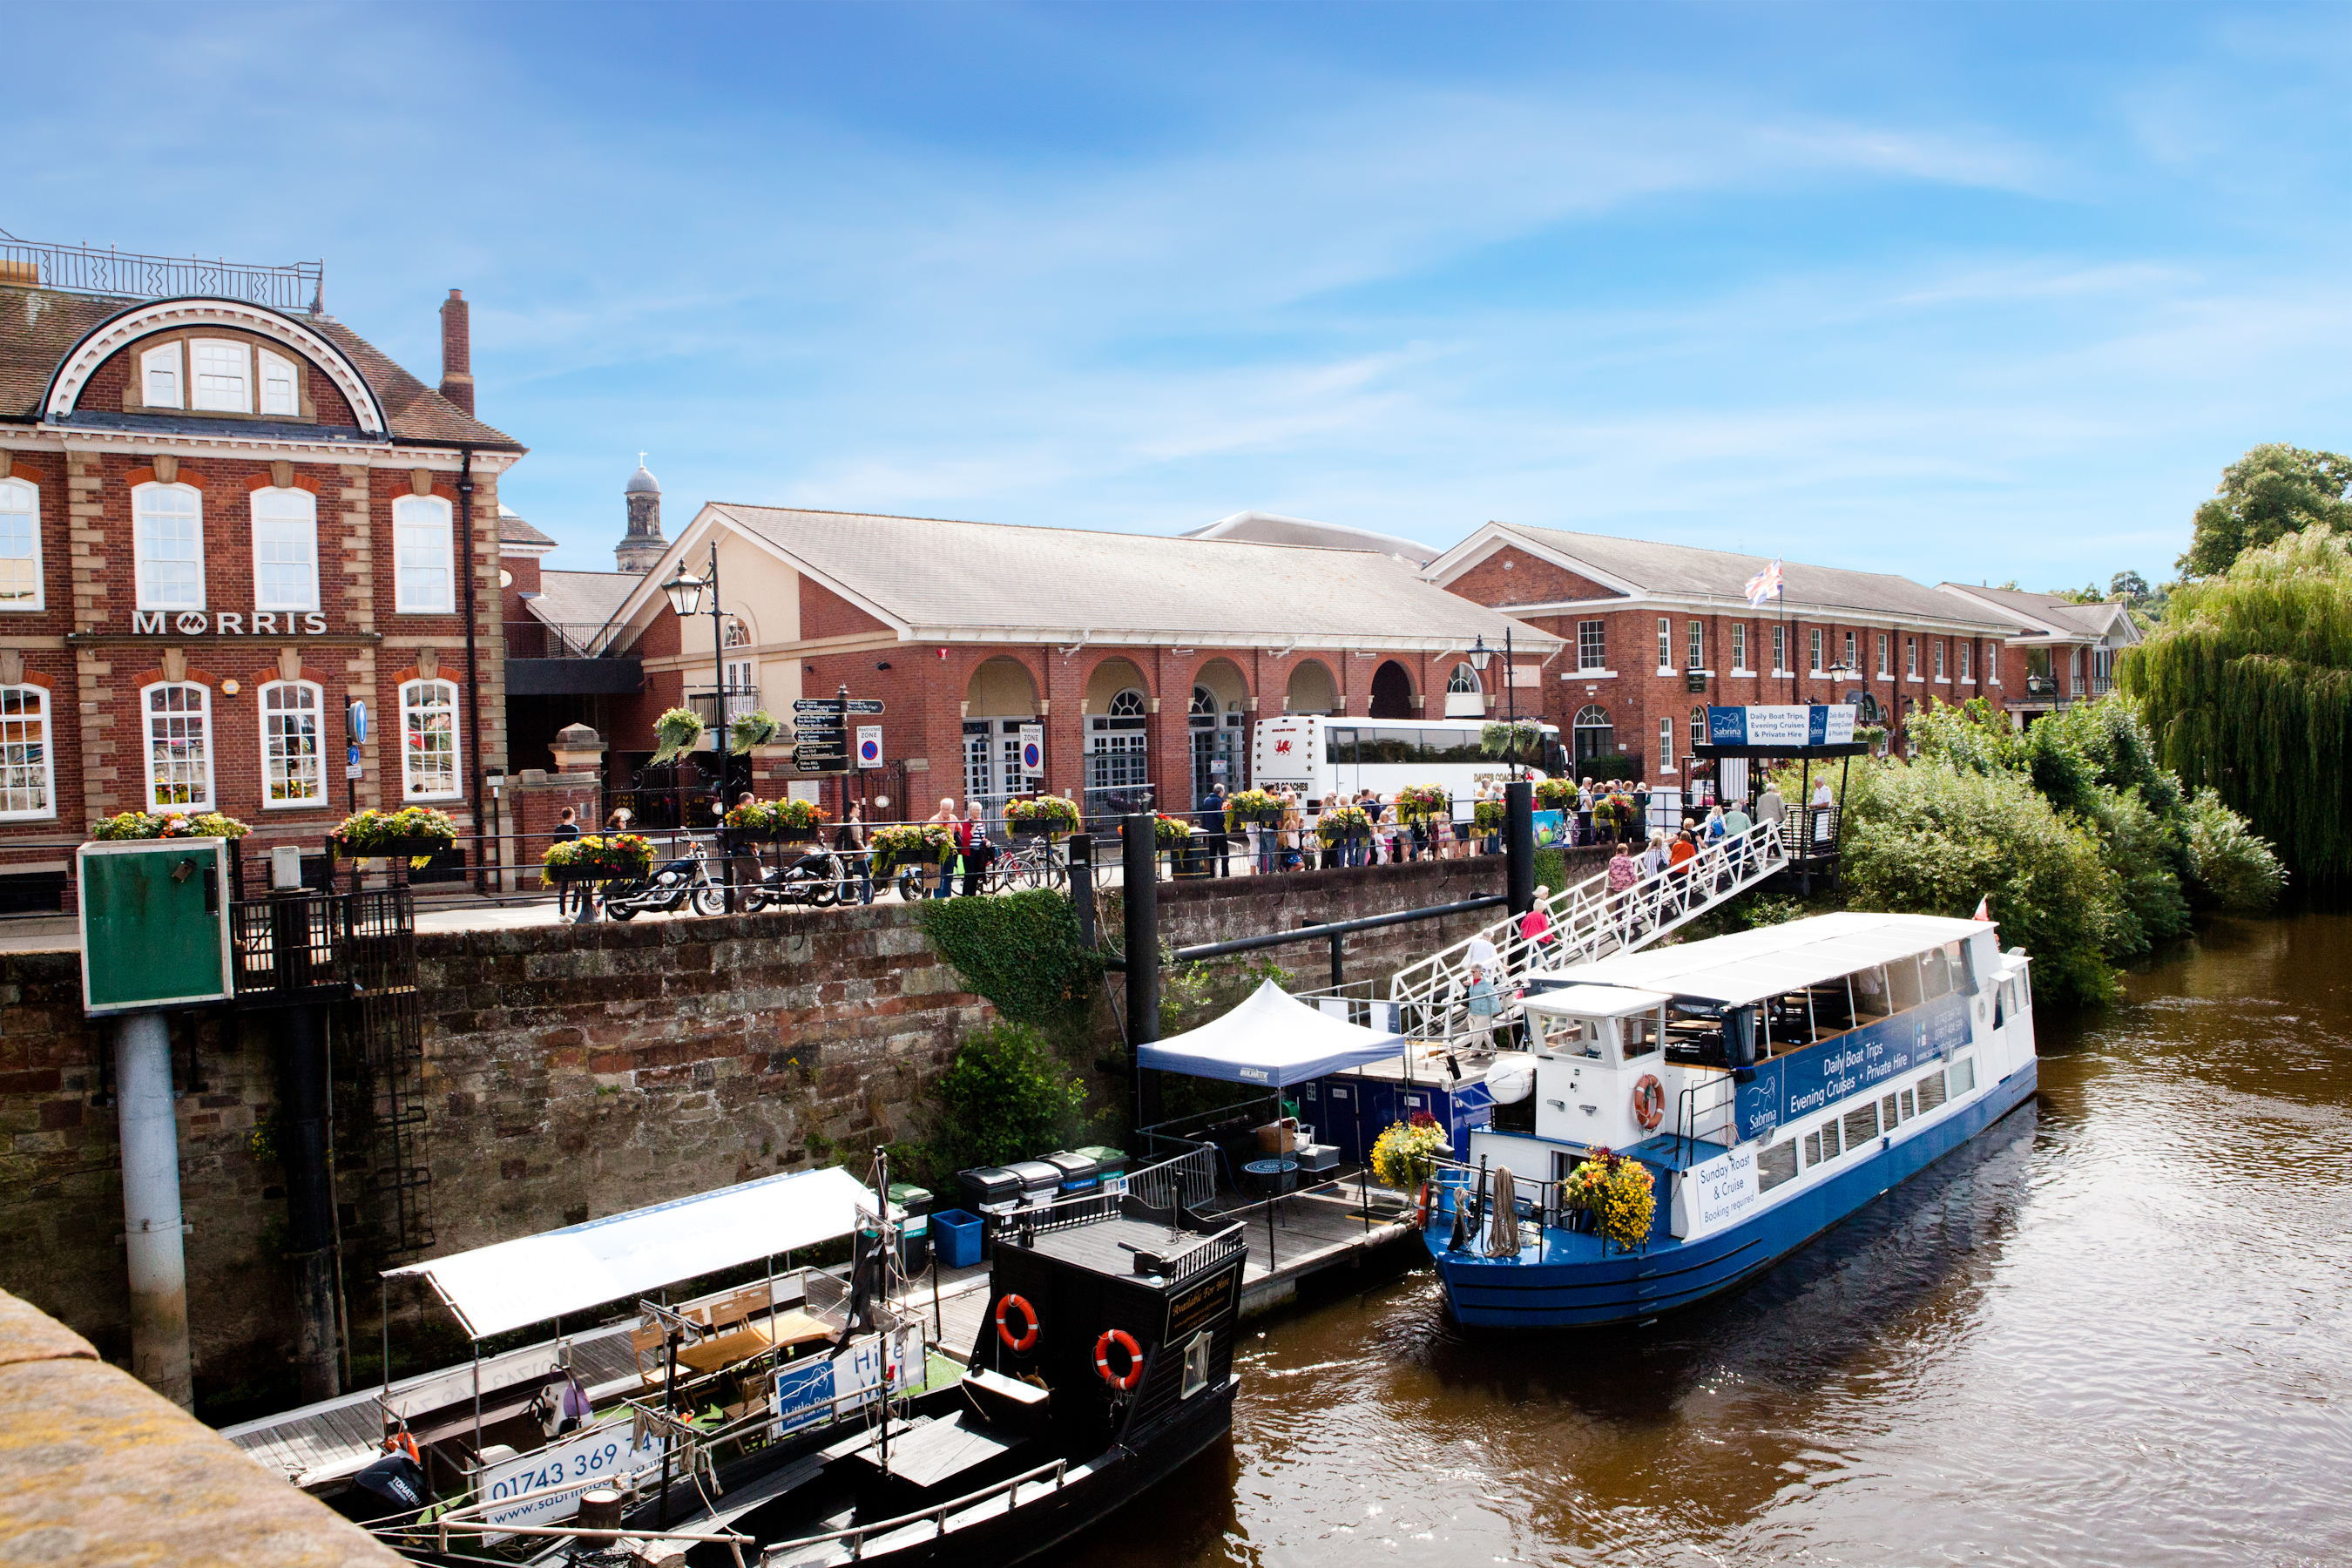 New 15-year lease at town's thriving Victoria Quay